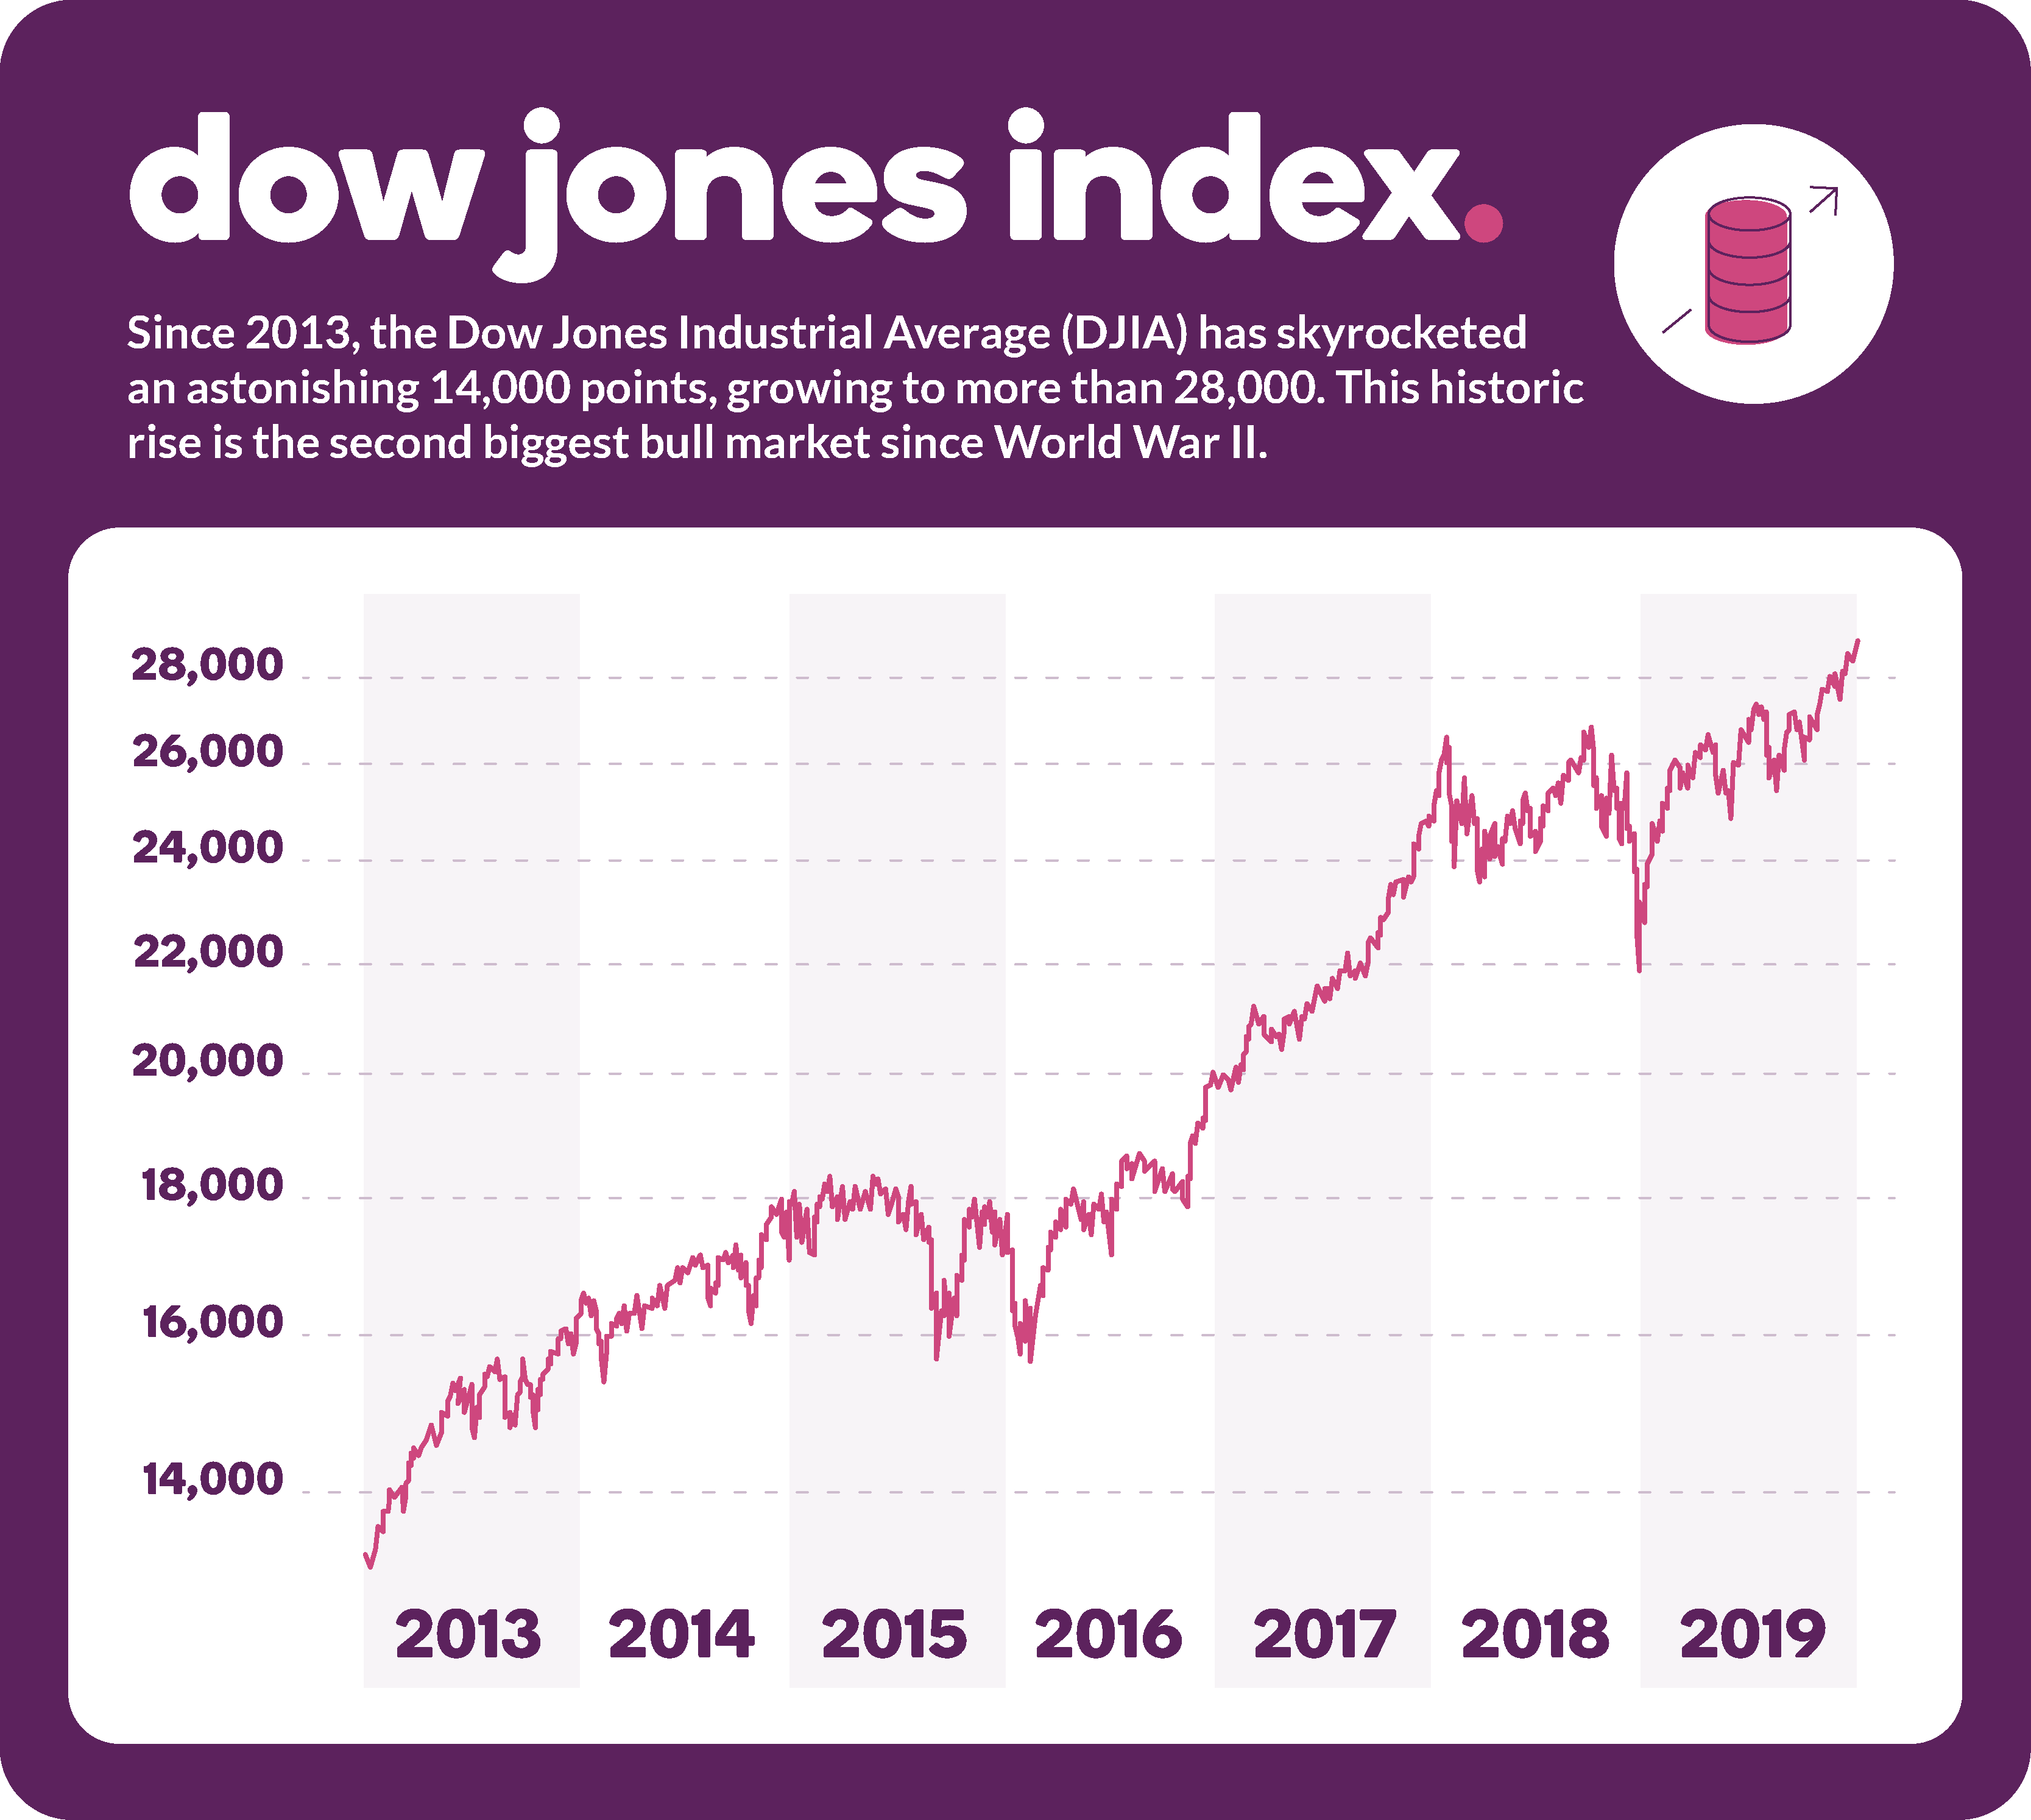 Since 2013, the Dow Jones Industrial Average has skyrocketed an astonishing 14,000 points to more than 28,000 points in 2019.